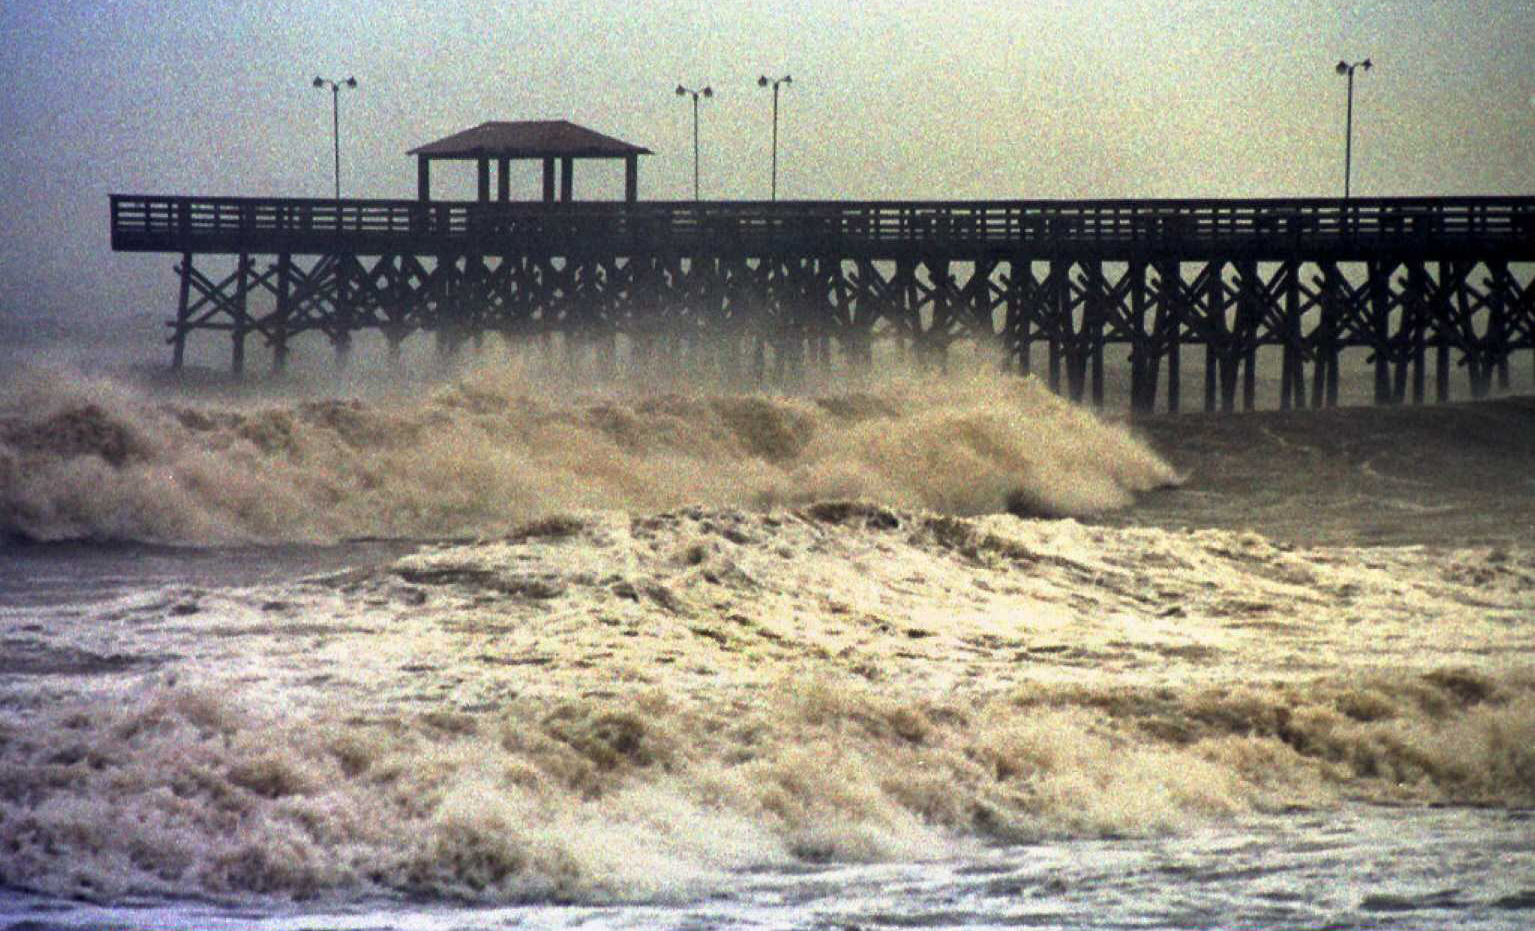 High waves and strong winds from Hurricane Fran crash in Myrtle Beach in 1996